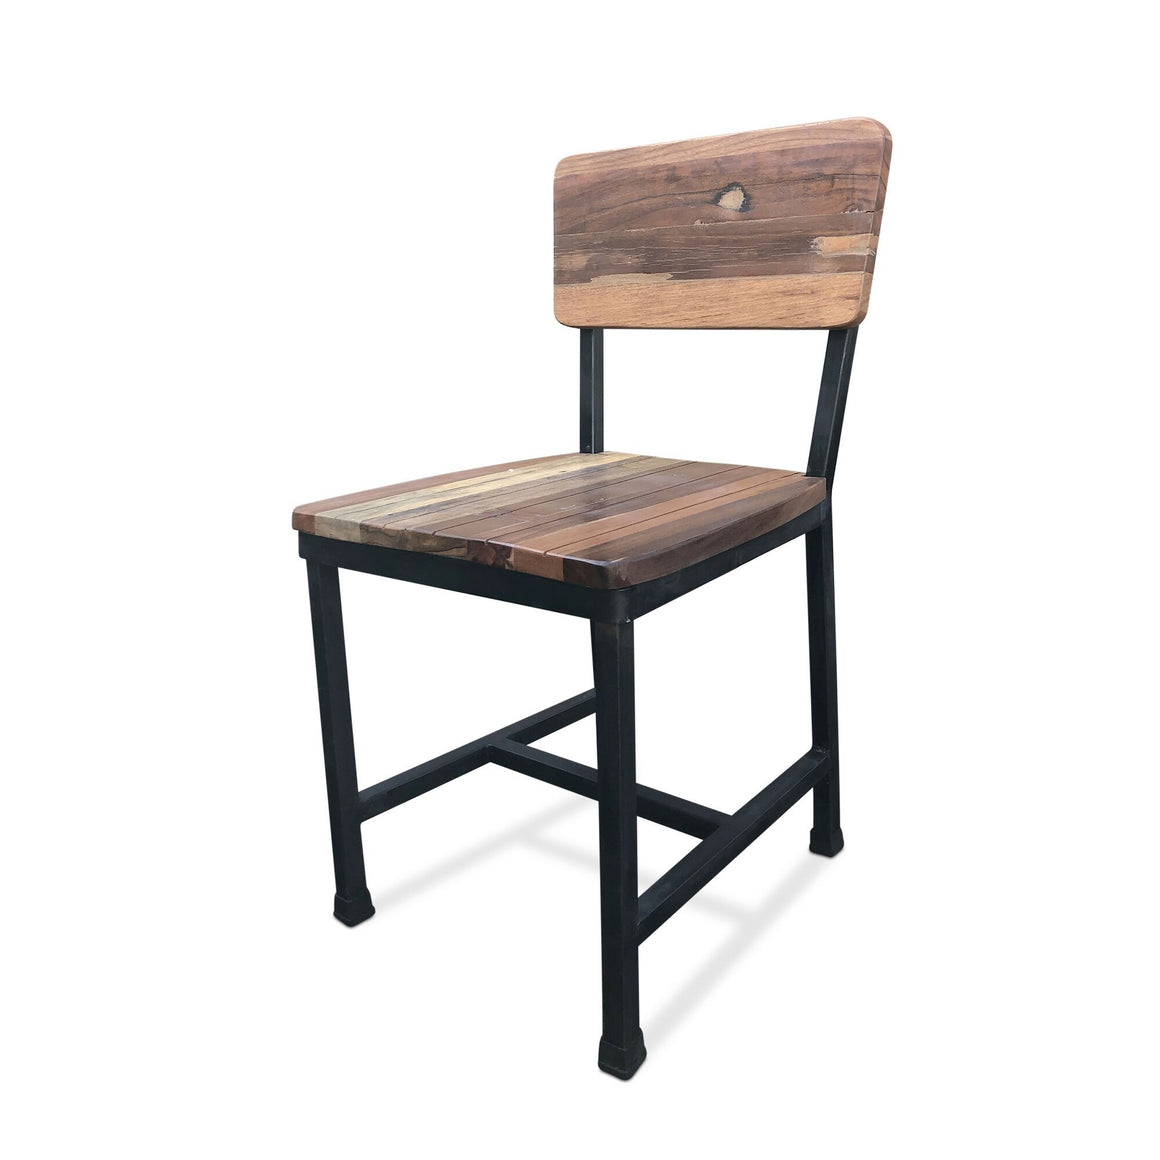 Modern Industrial Dining Chair -Metal Reclaimed Hardwood - Set of 2 - Rustic Deco Incorporated